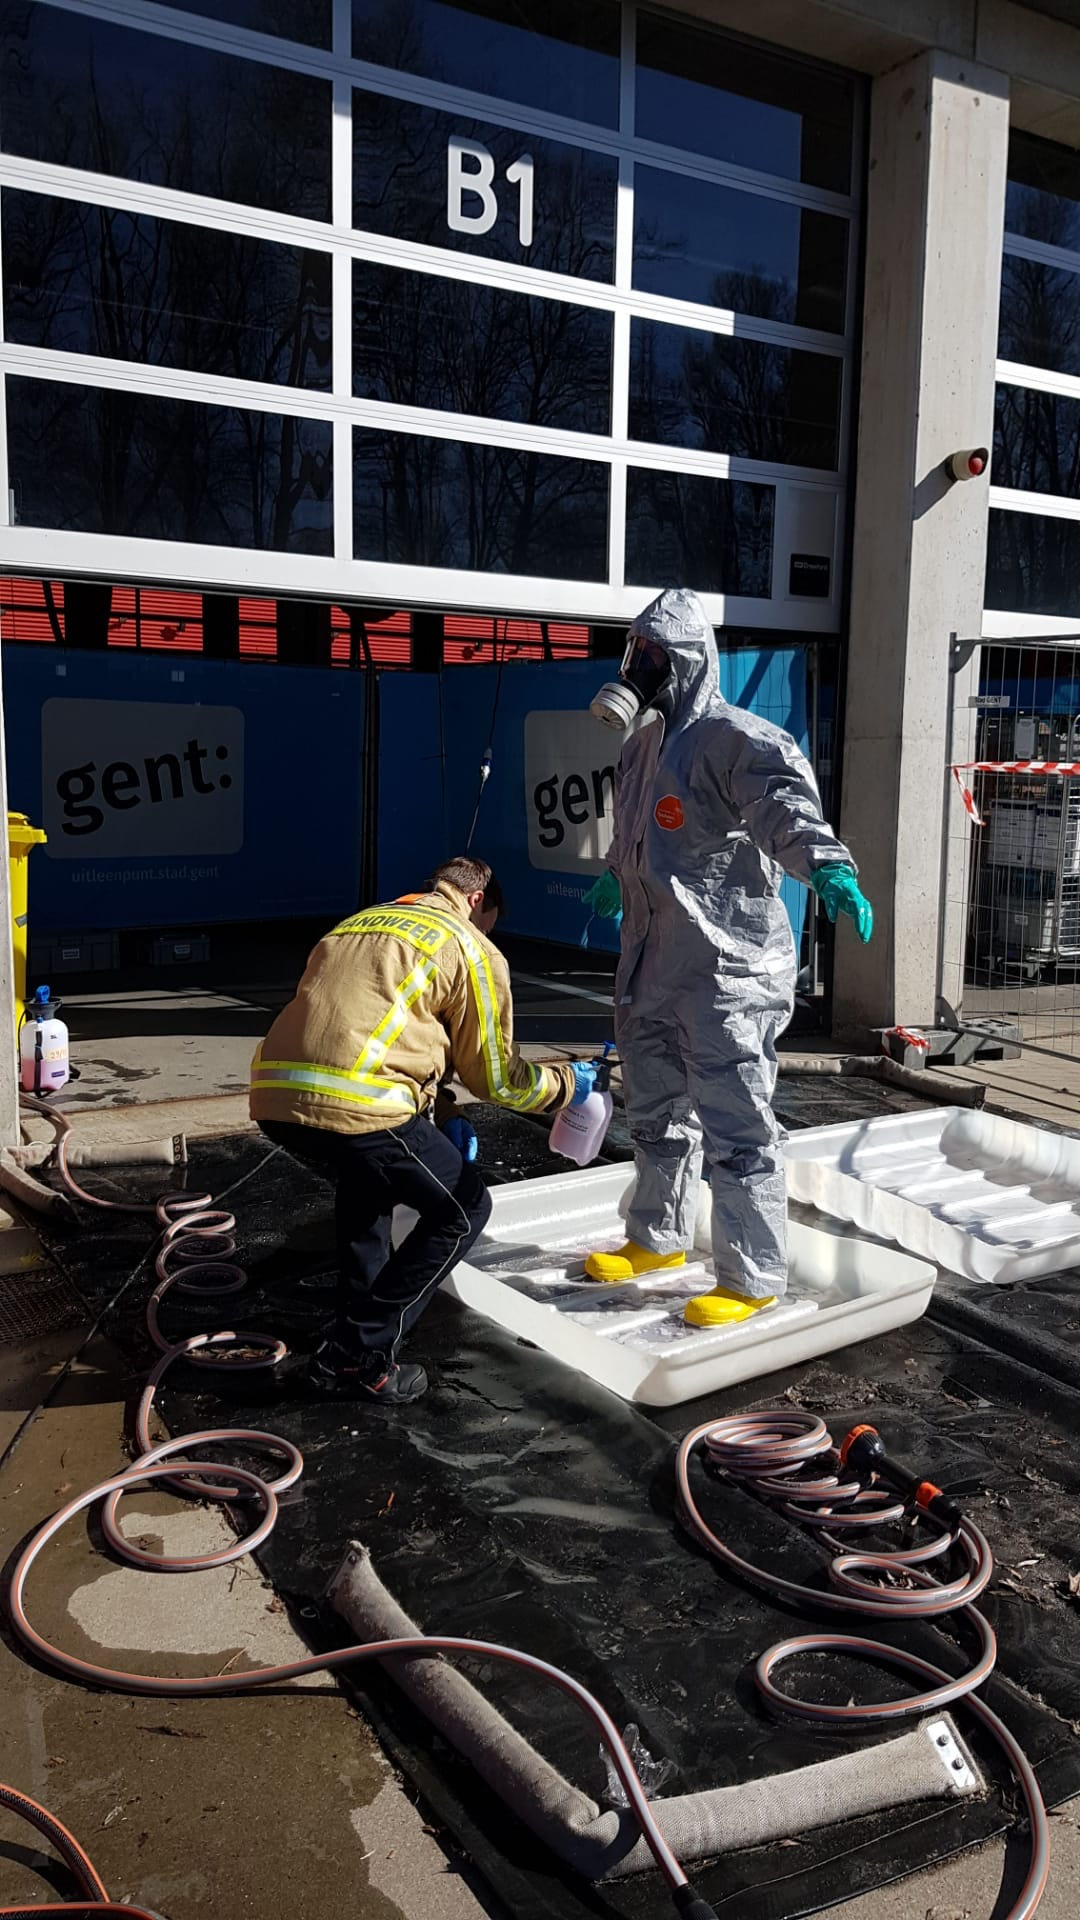 Firefighter decontaminating a person in a HazMat suit